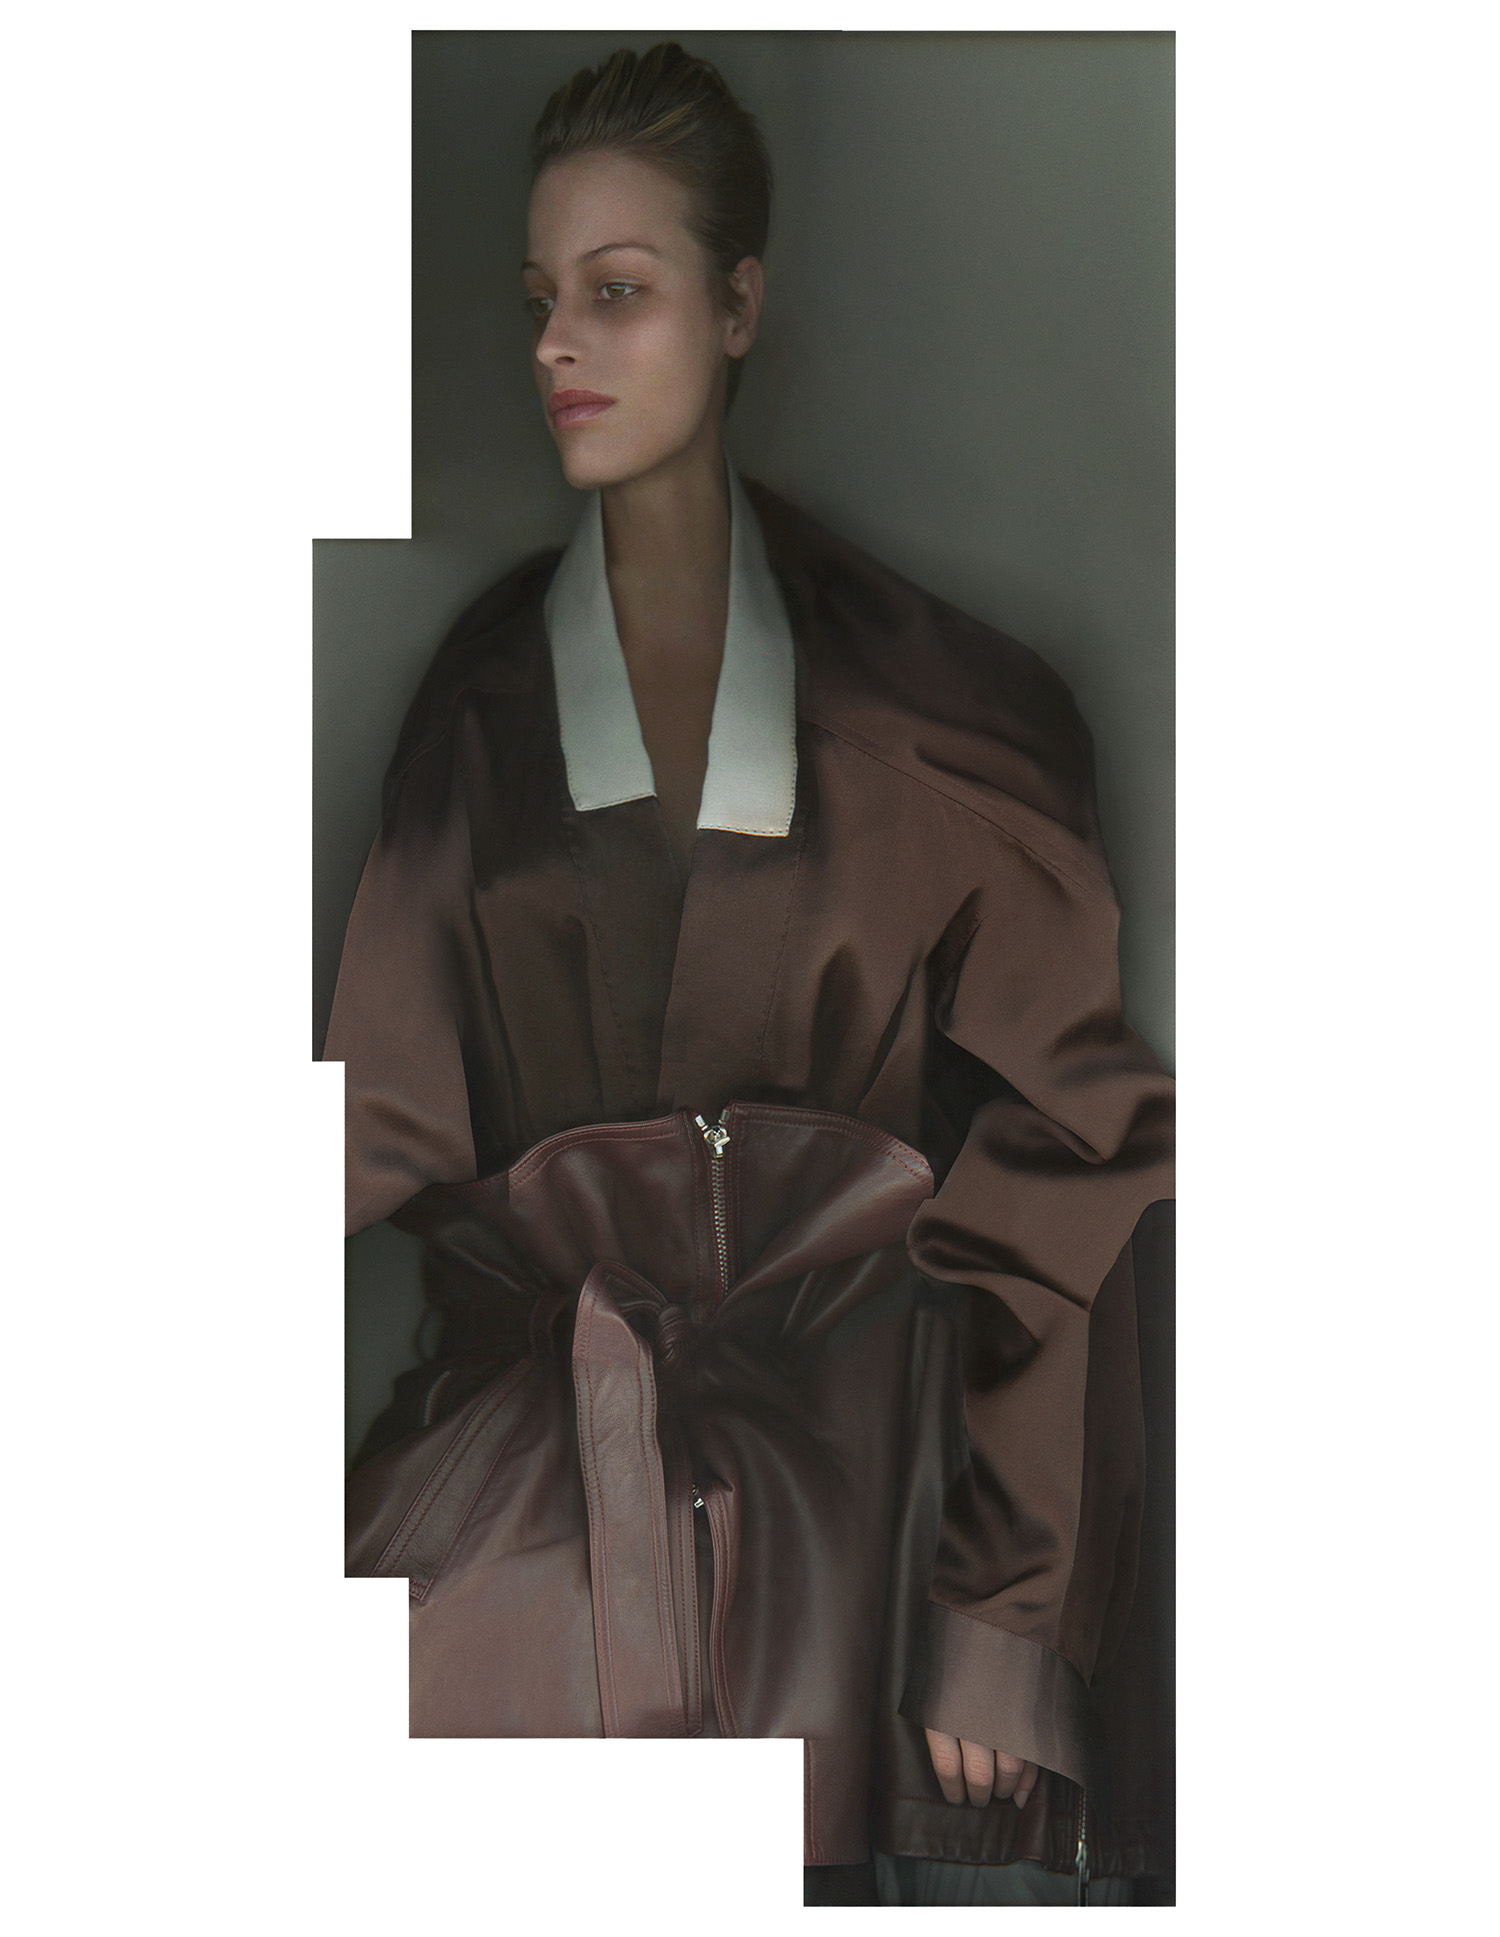 HAIDER ACKERMANN_FINAL FORMAT B copie